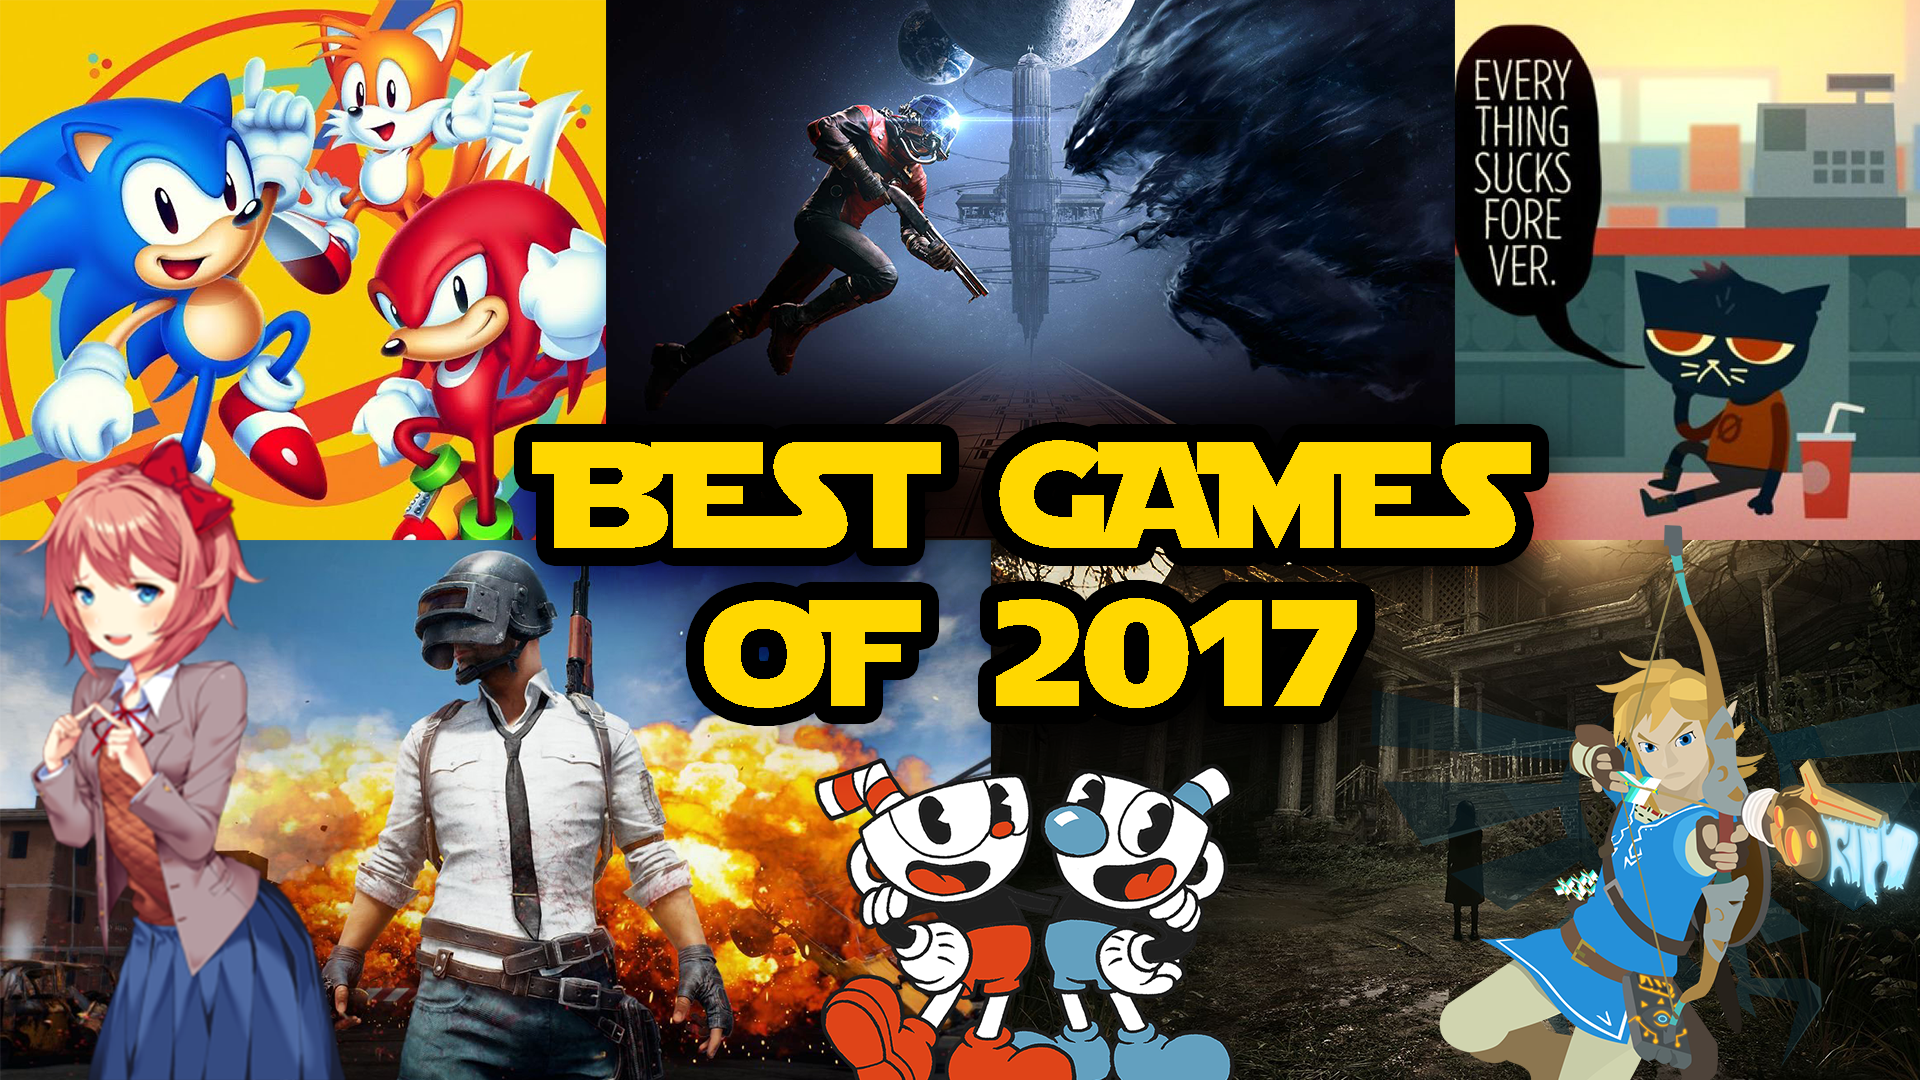 Best Video Games 2017